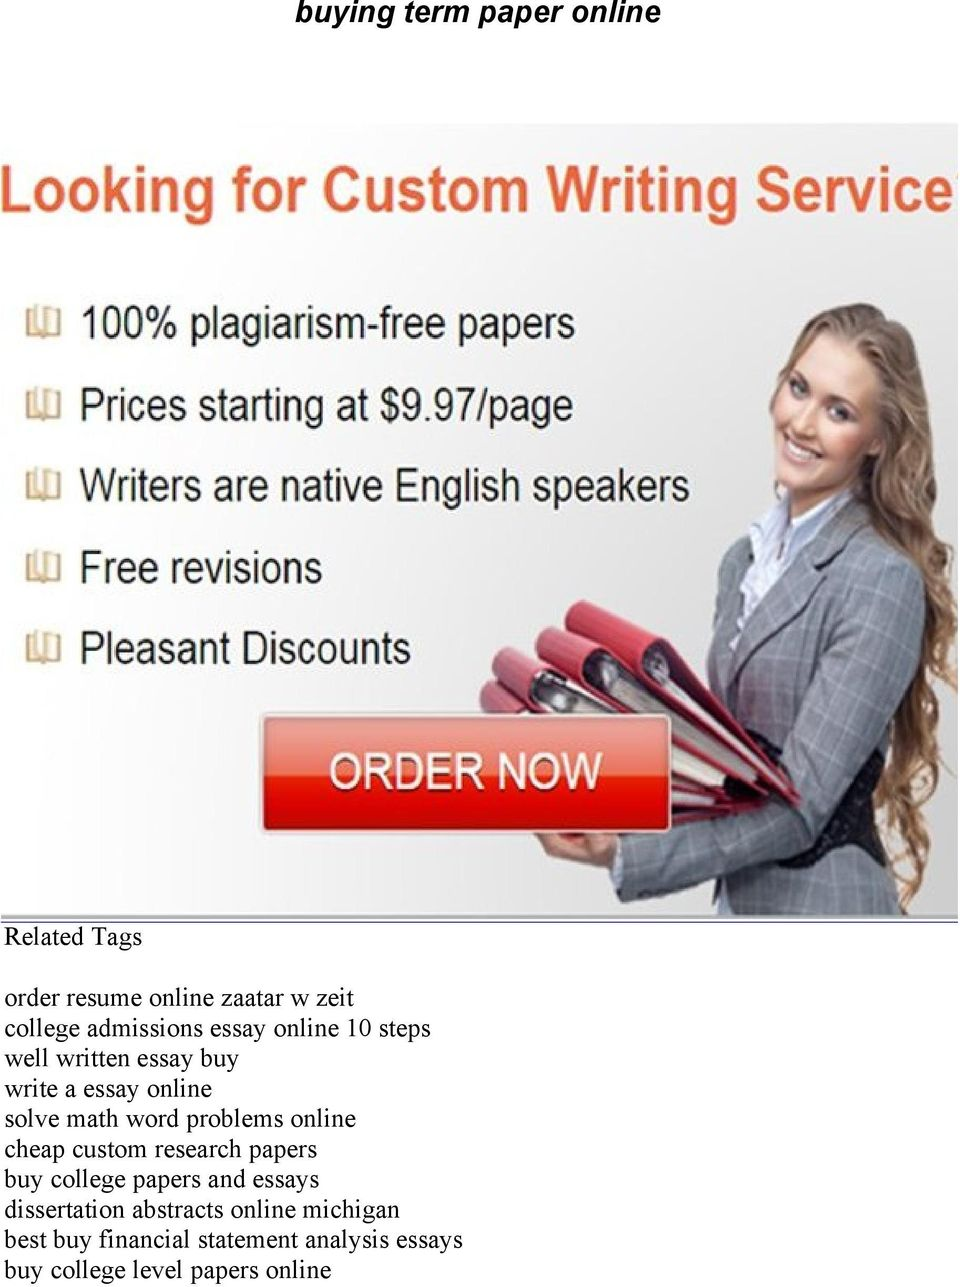 online cheap custom research papers buy college papers and essays dissertation abstracts